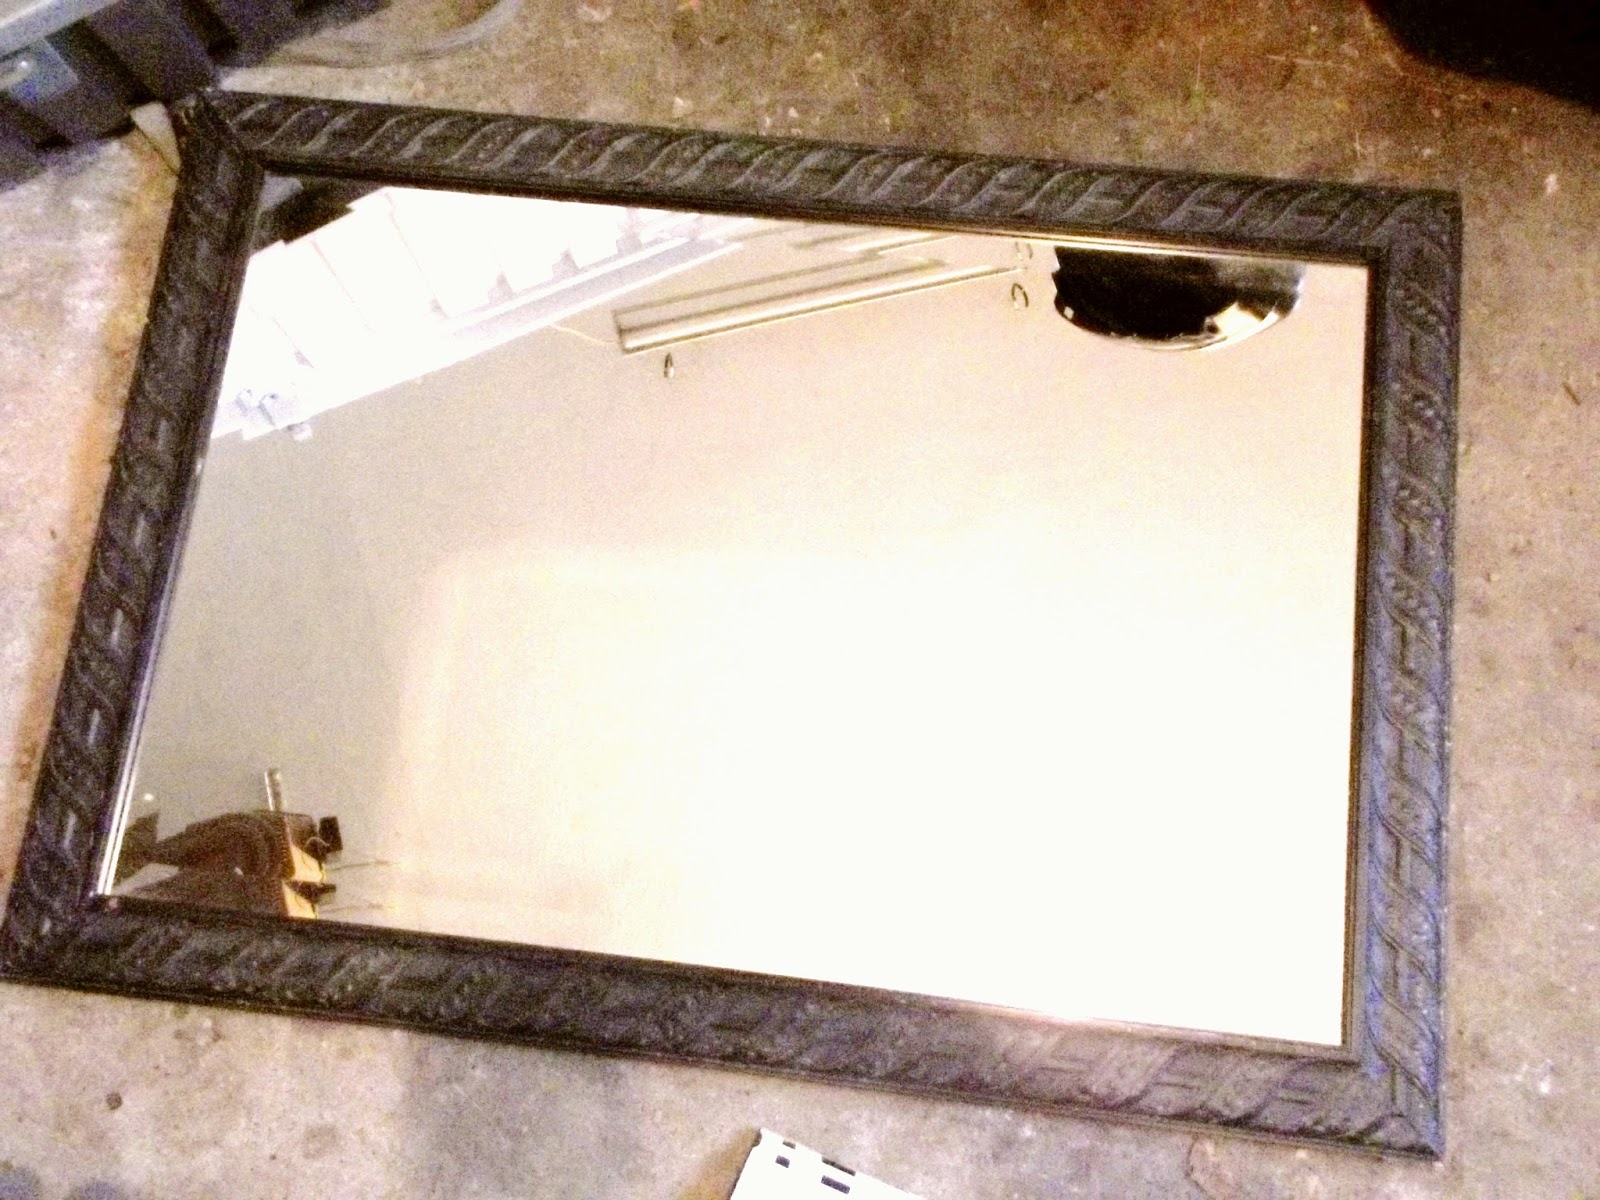 Wild Blumes: Painting an Old Mirror in the Frame